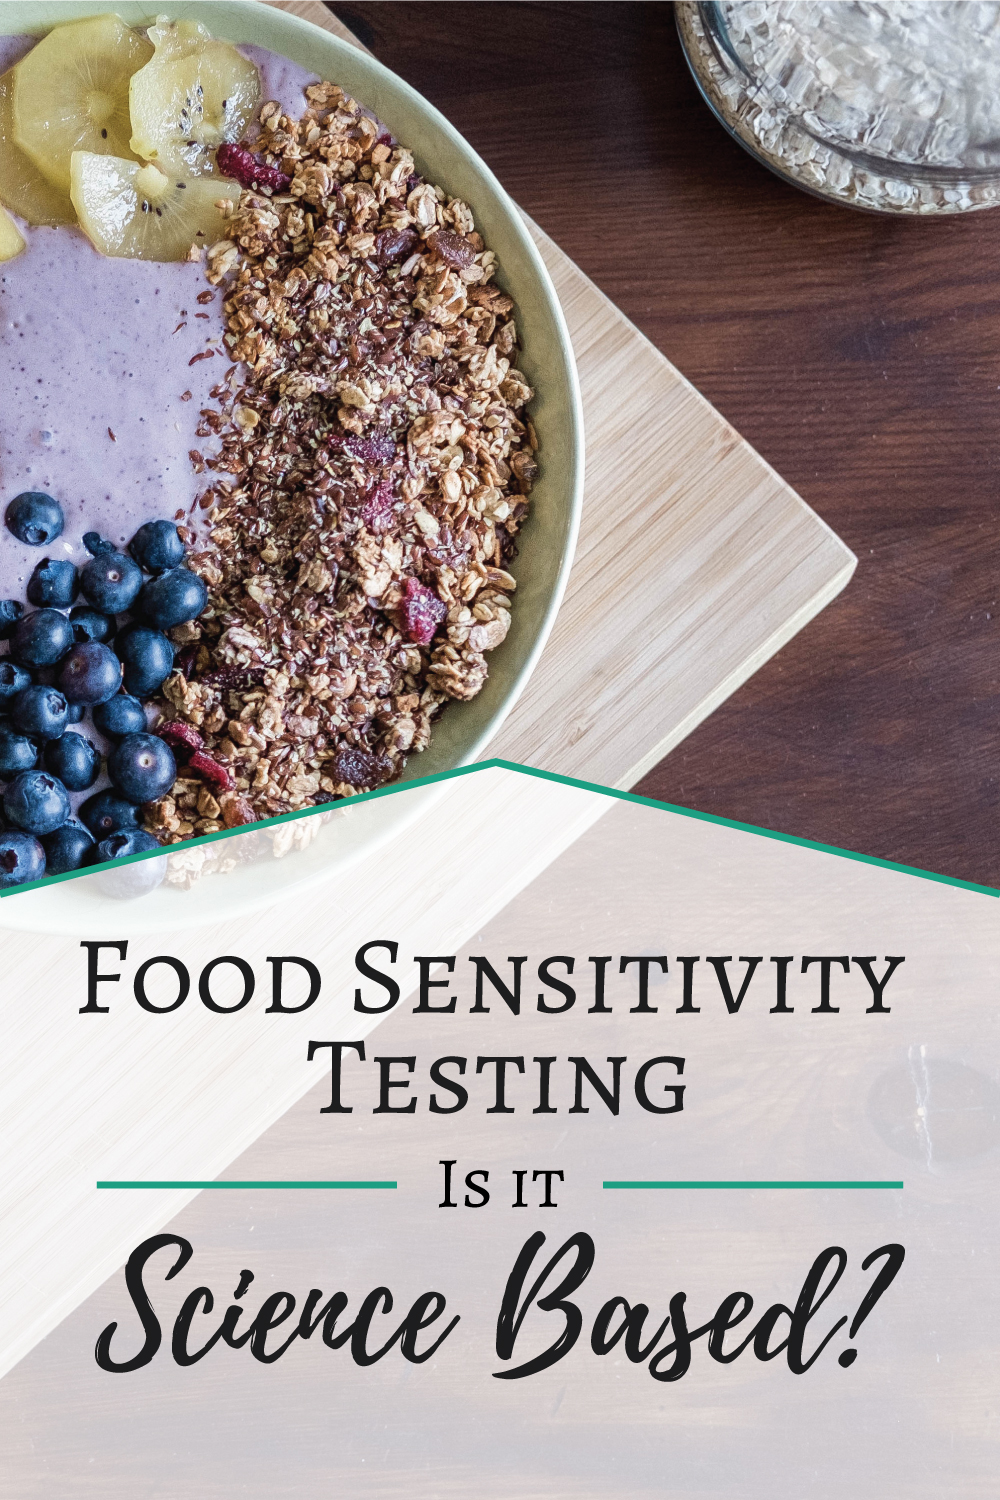 Food Sensitivity Testing - Is it Science Based?